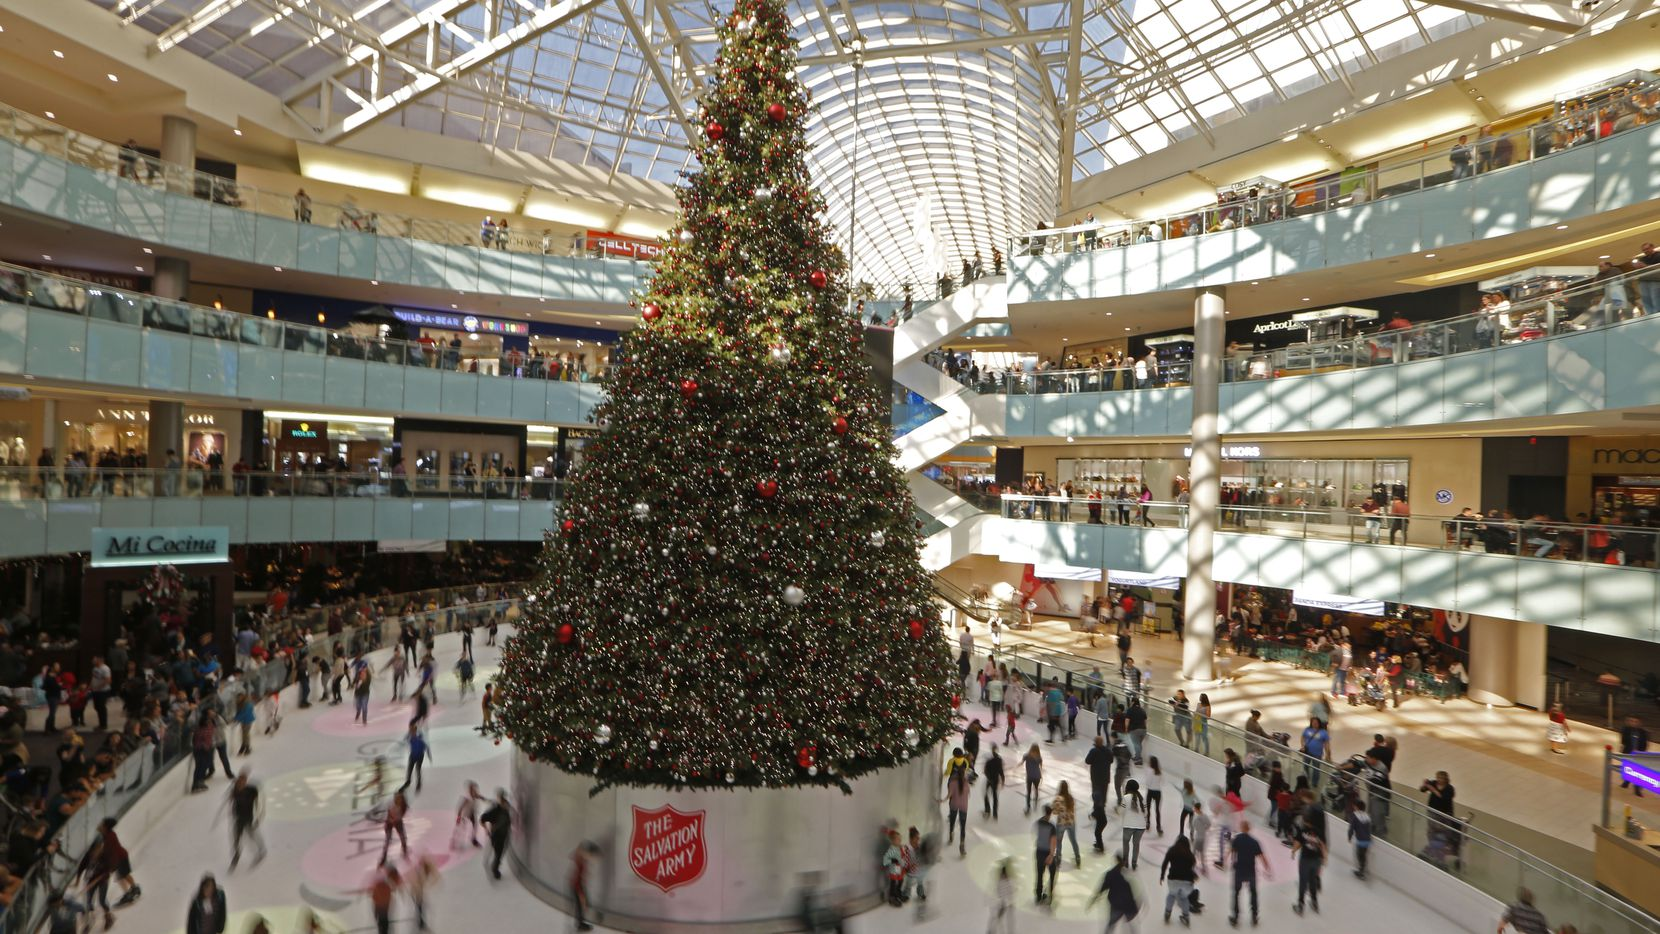 Christmas Day At Dfw Airport 2020 27 fun things to do the week of Nov. 28 Dec. 5 in Dallas Fort Worth